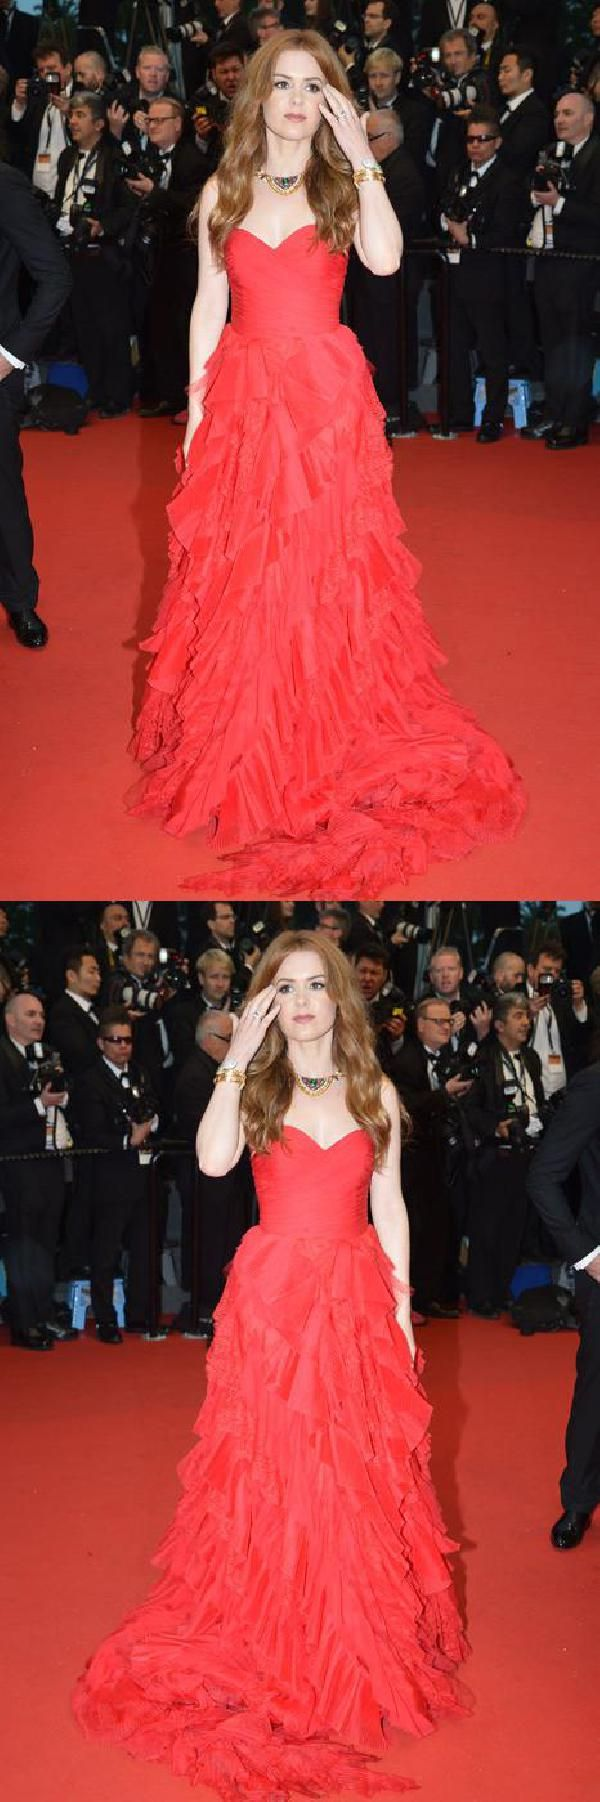 Isla fisher red discount prom dress cannes film festival